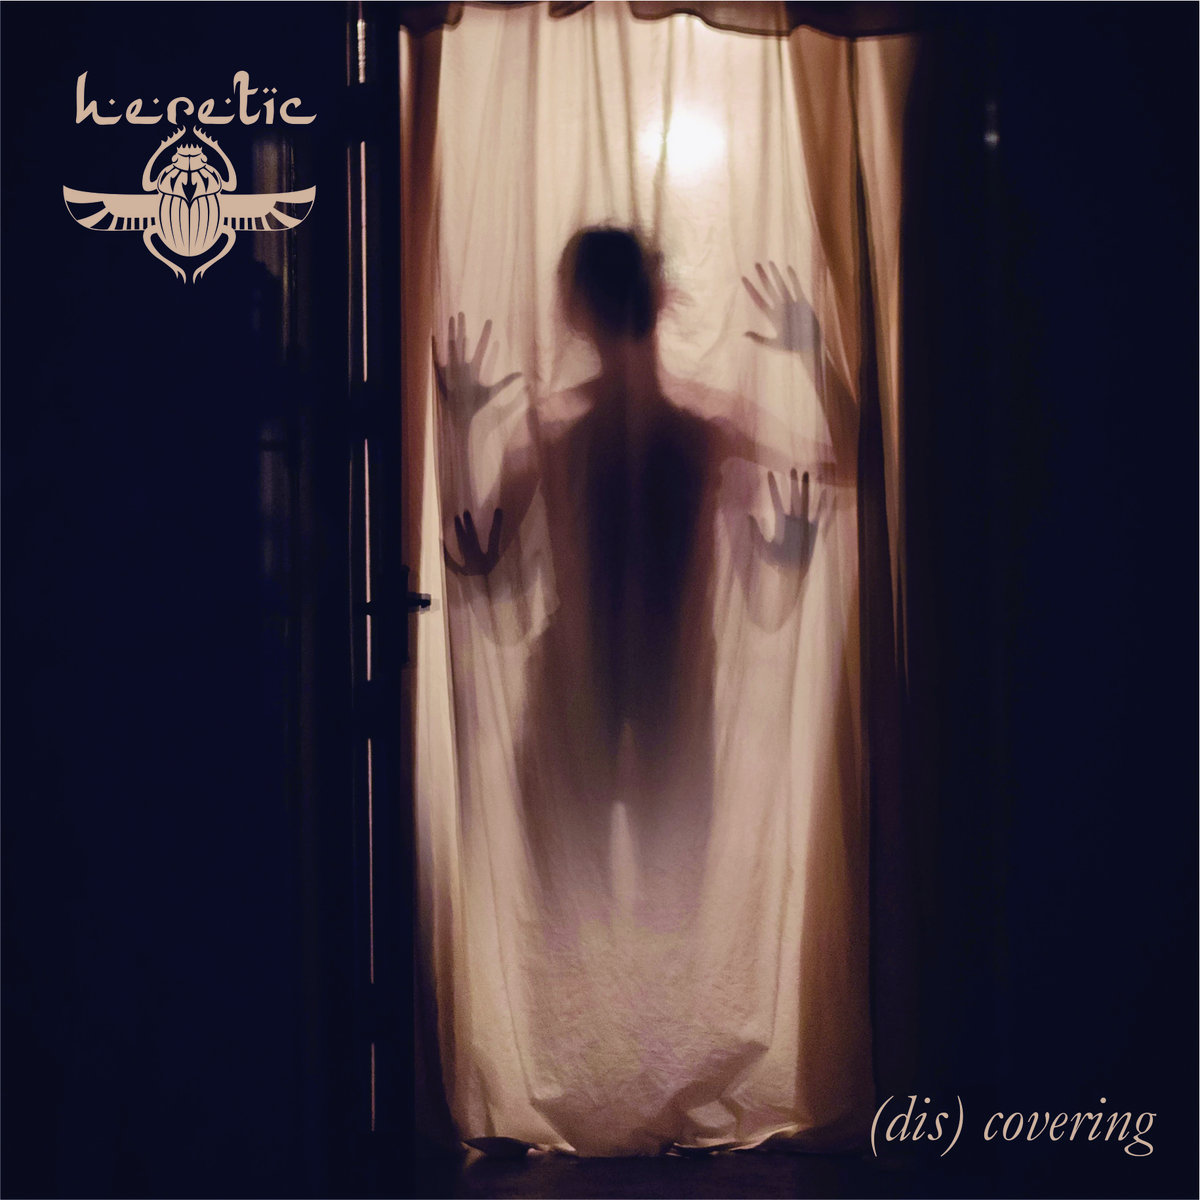 dis) covering   Heretic